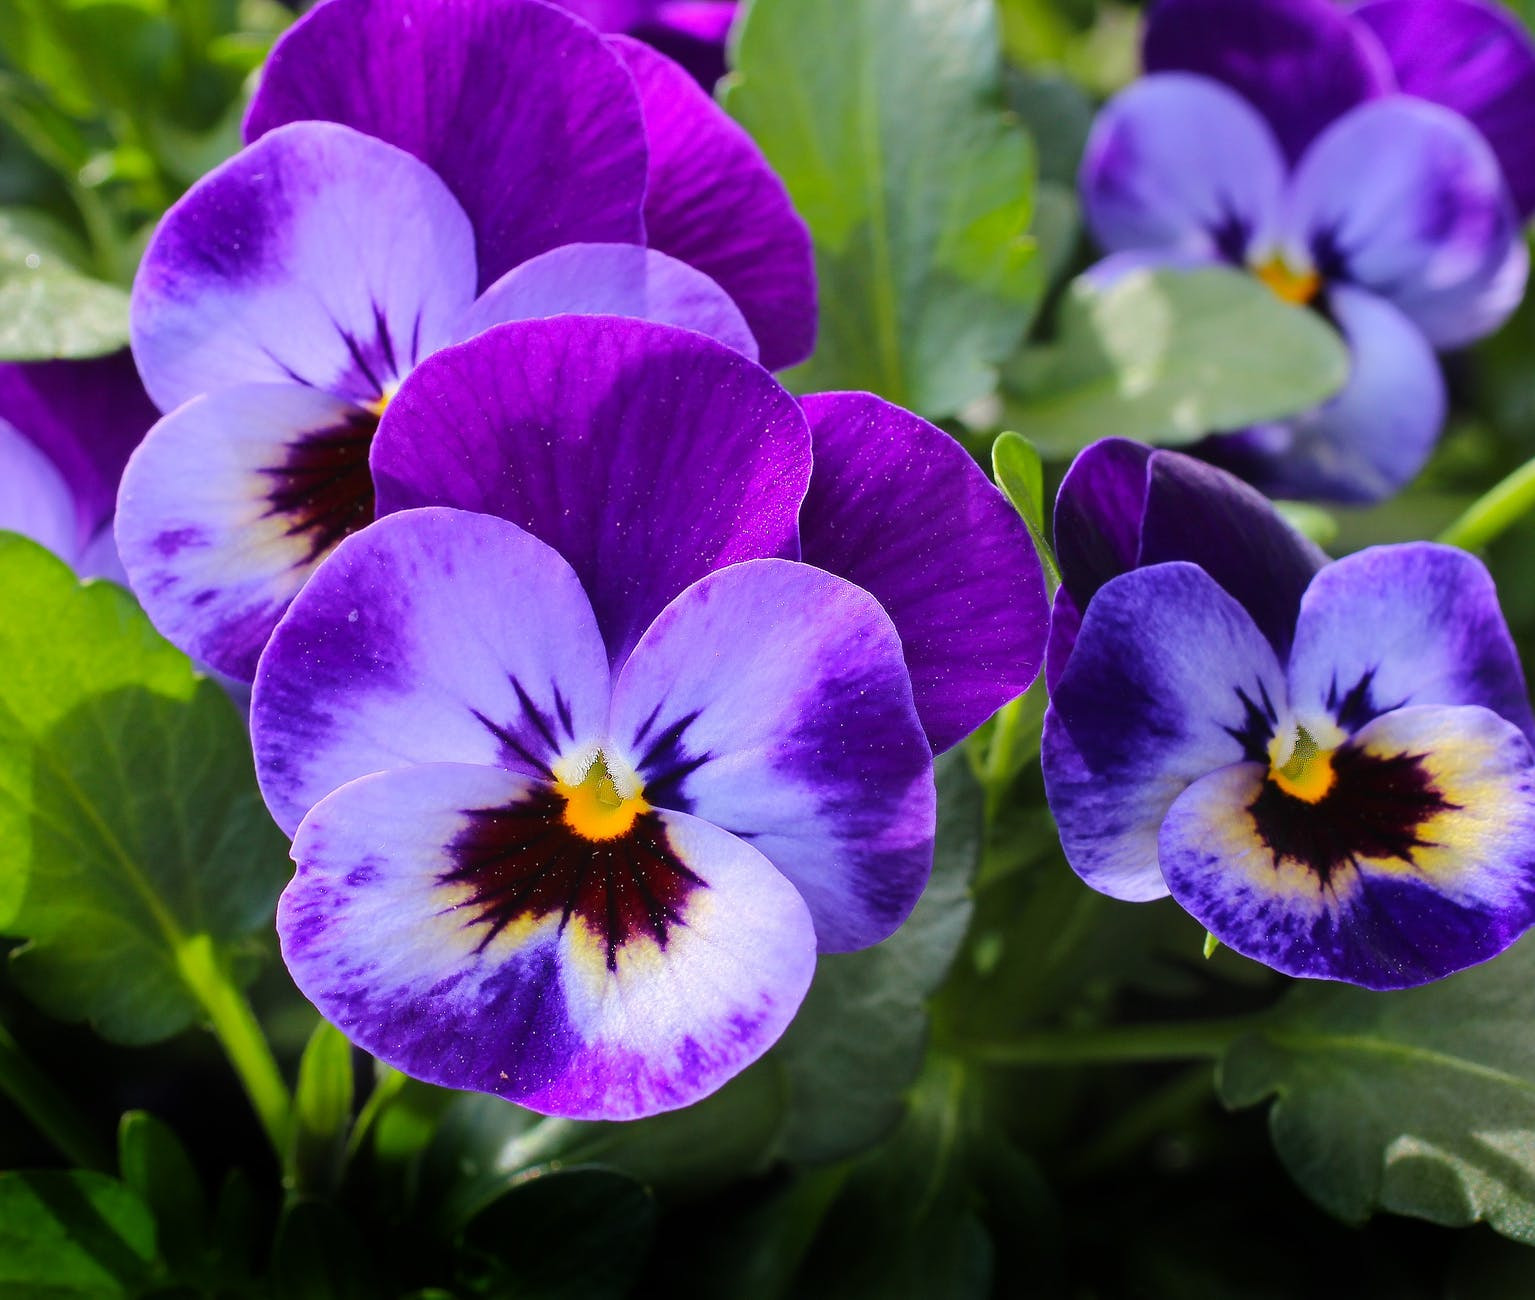 32 Edible Flowers | The Complete List Of Flowers You Can Eat